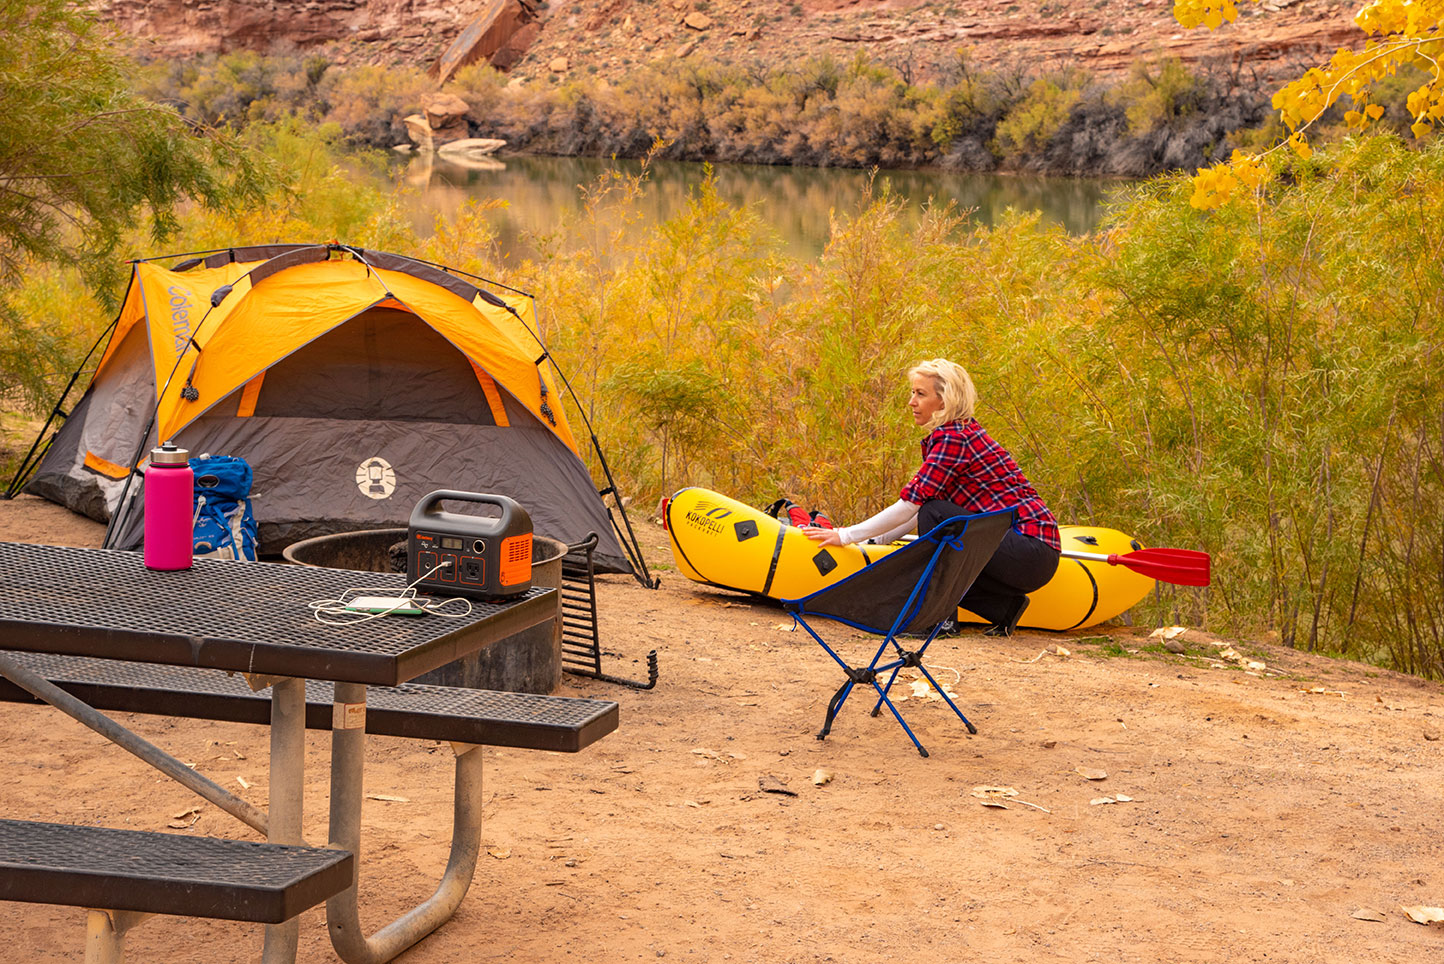 Kokopelli Packraft Adventure Colorado River Moab, Utah. Daniel Britton Lifestyle, Adventure Photography